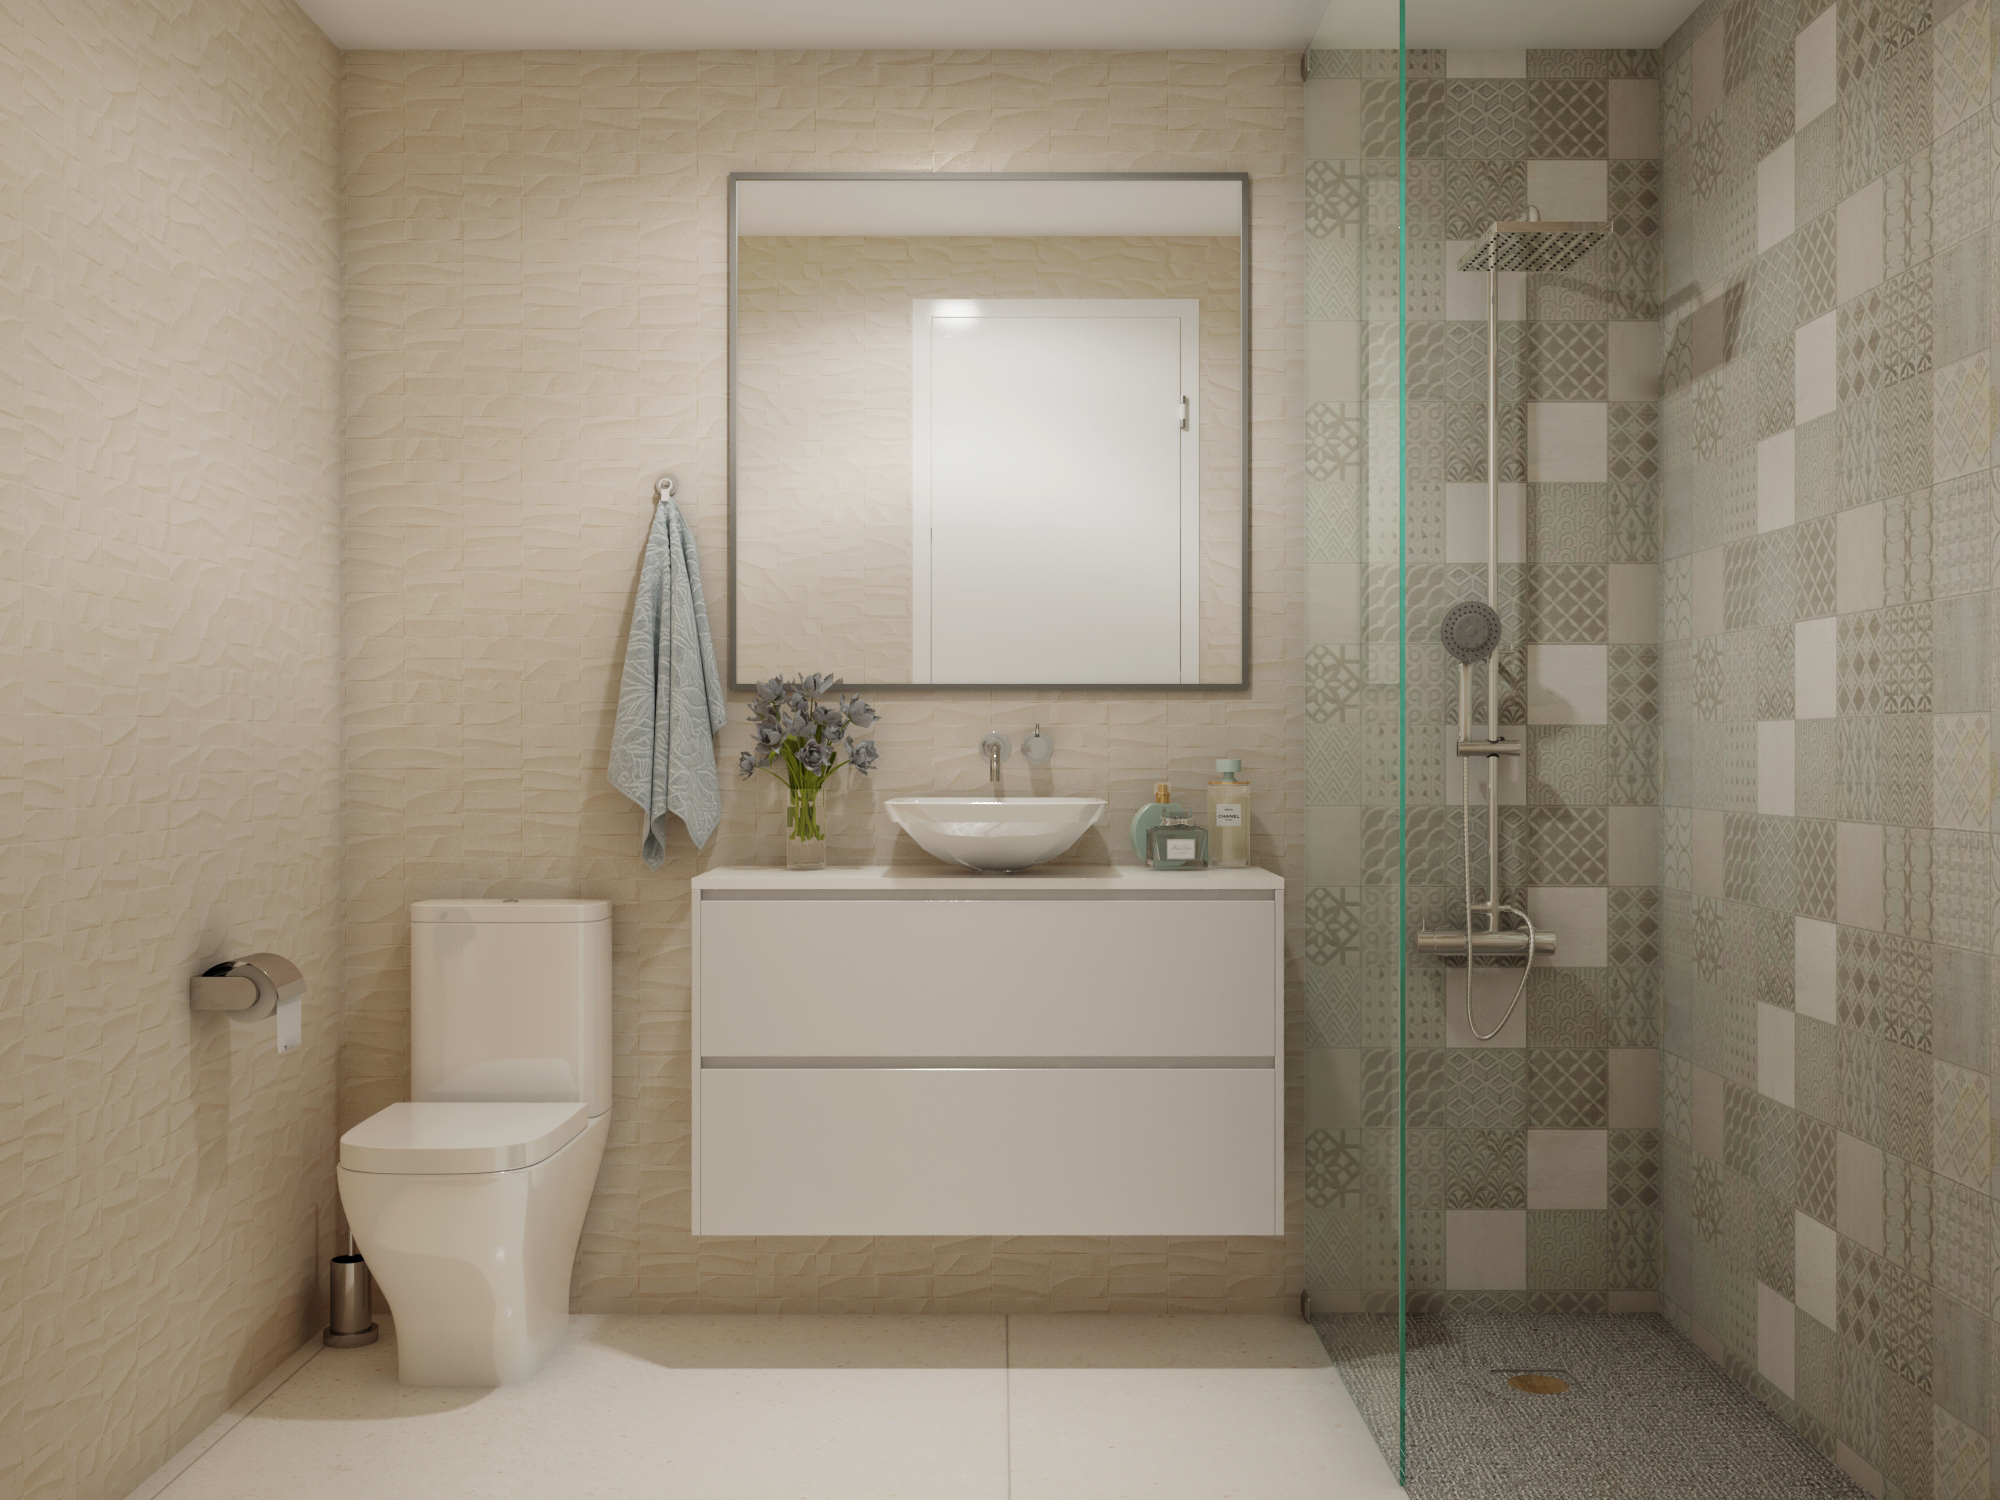 Apartment,For Sale,1148